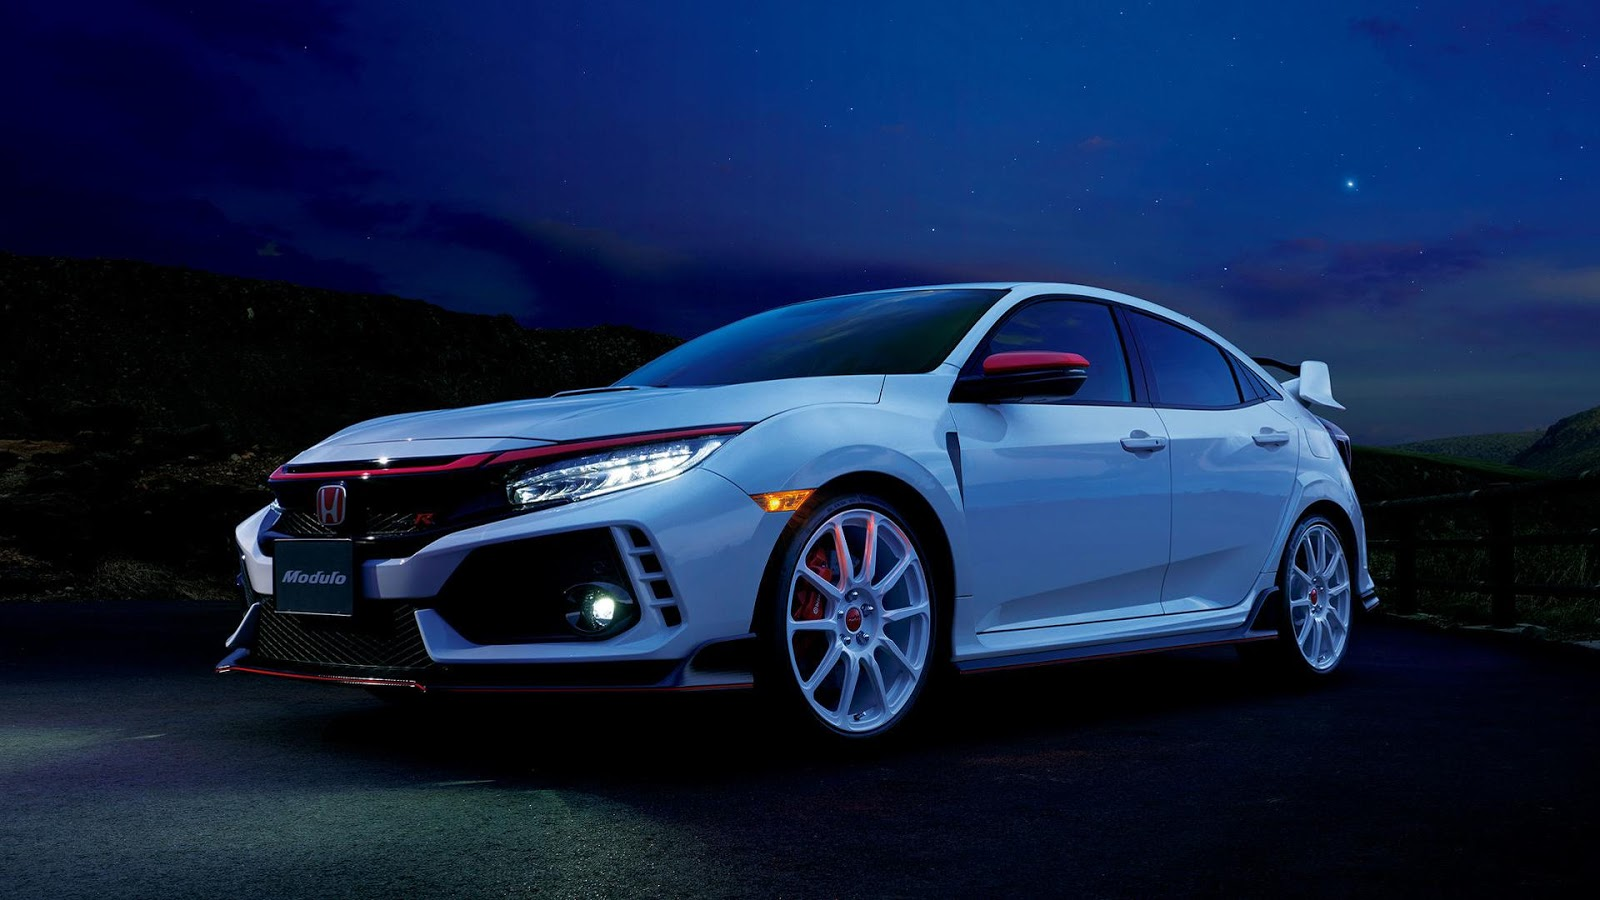 JDM Honda Civic Type R Accessories Make It Even Wilder ...